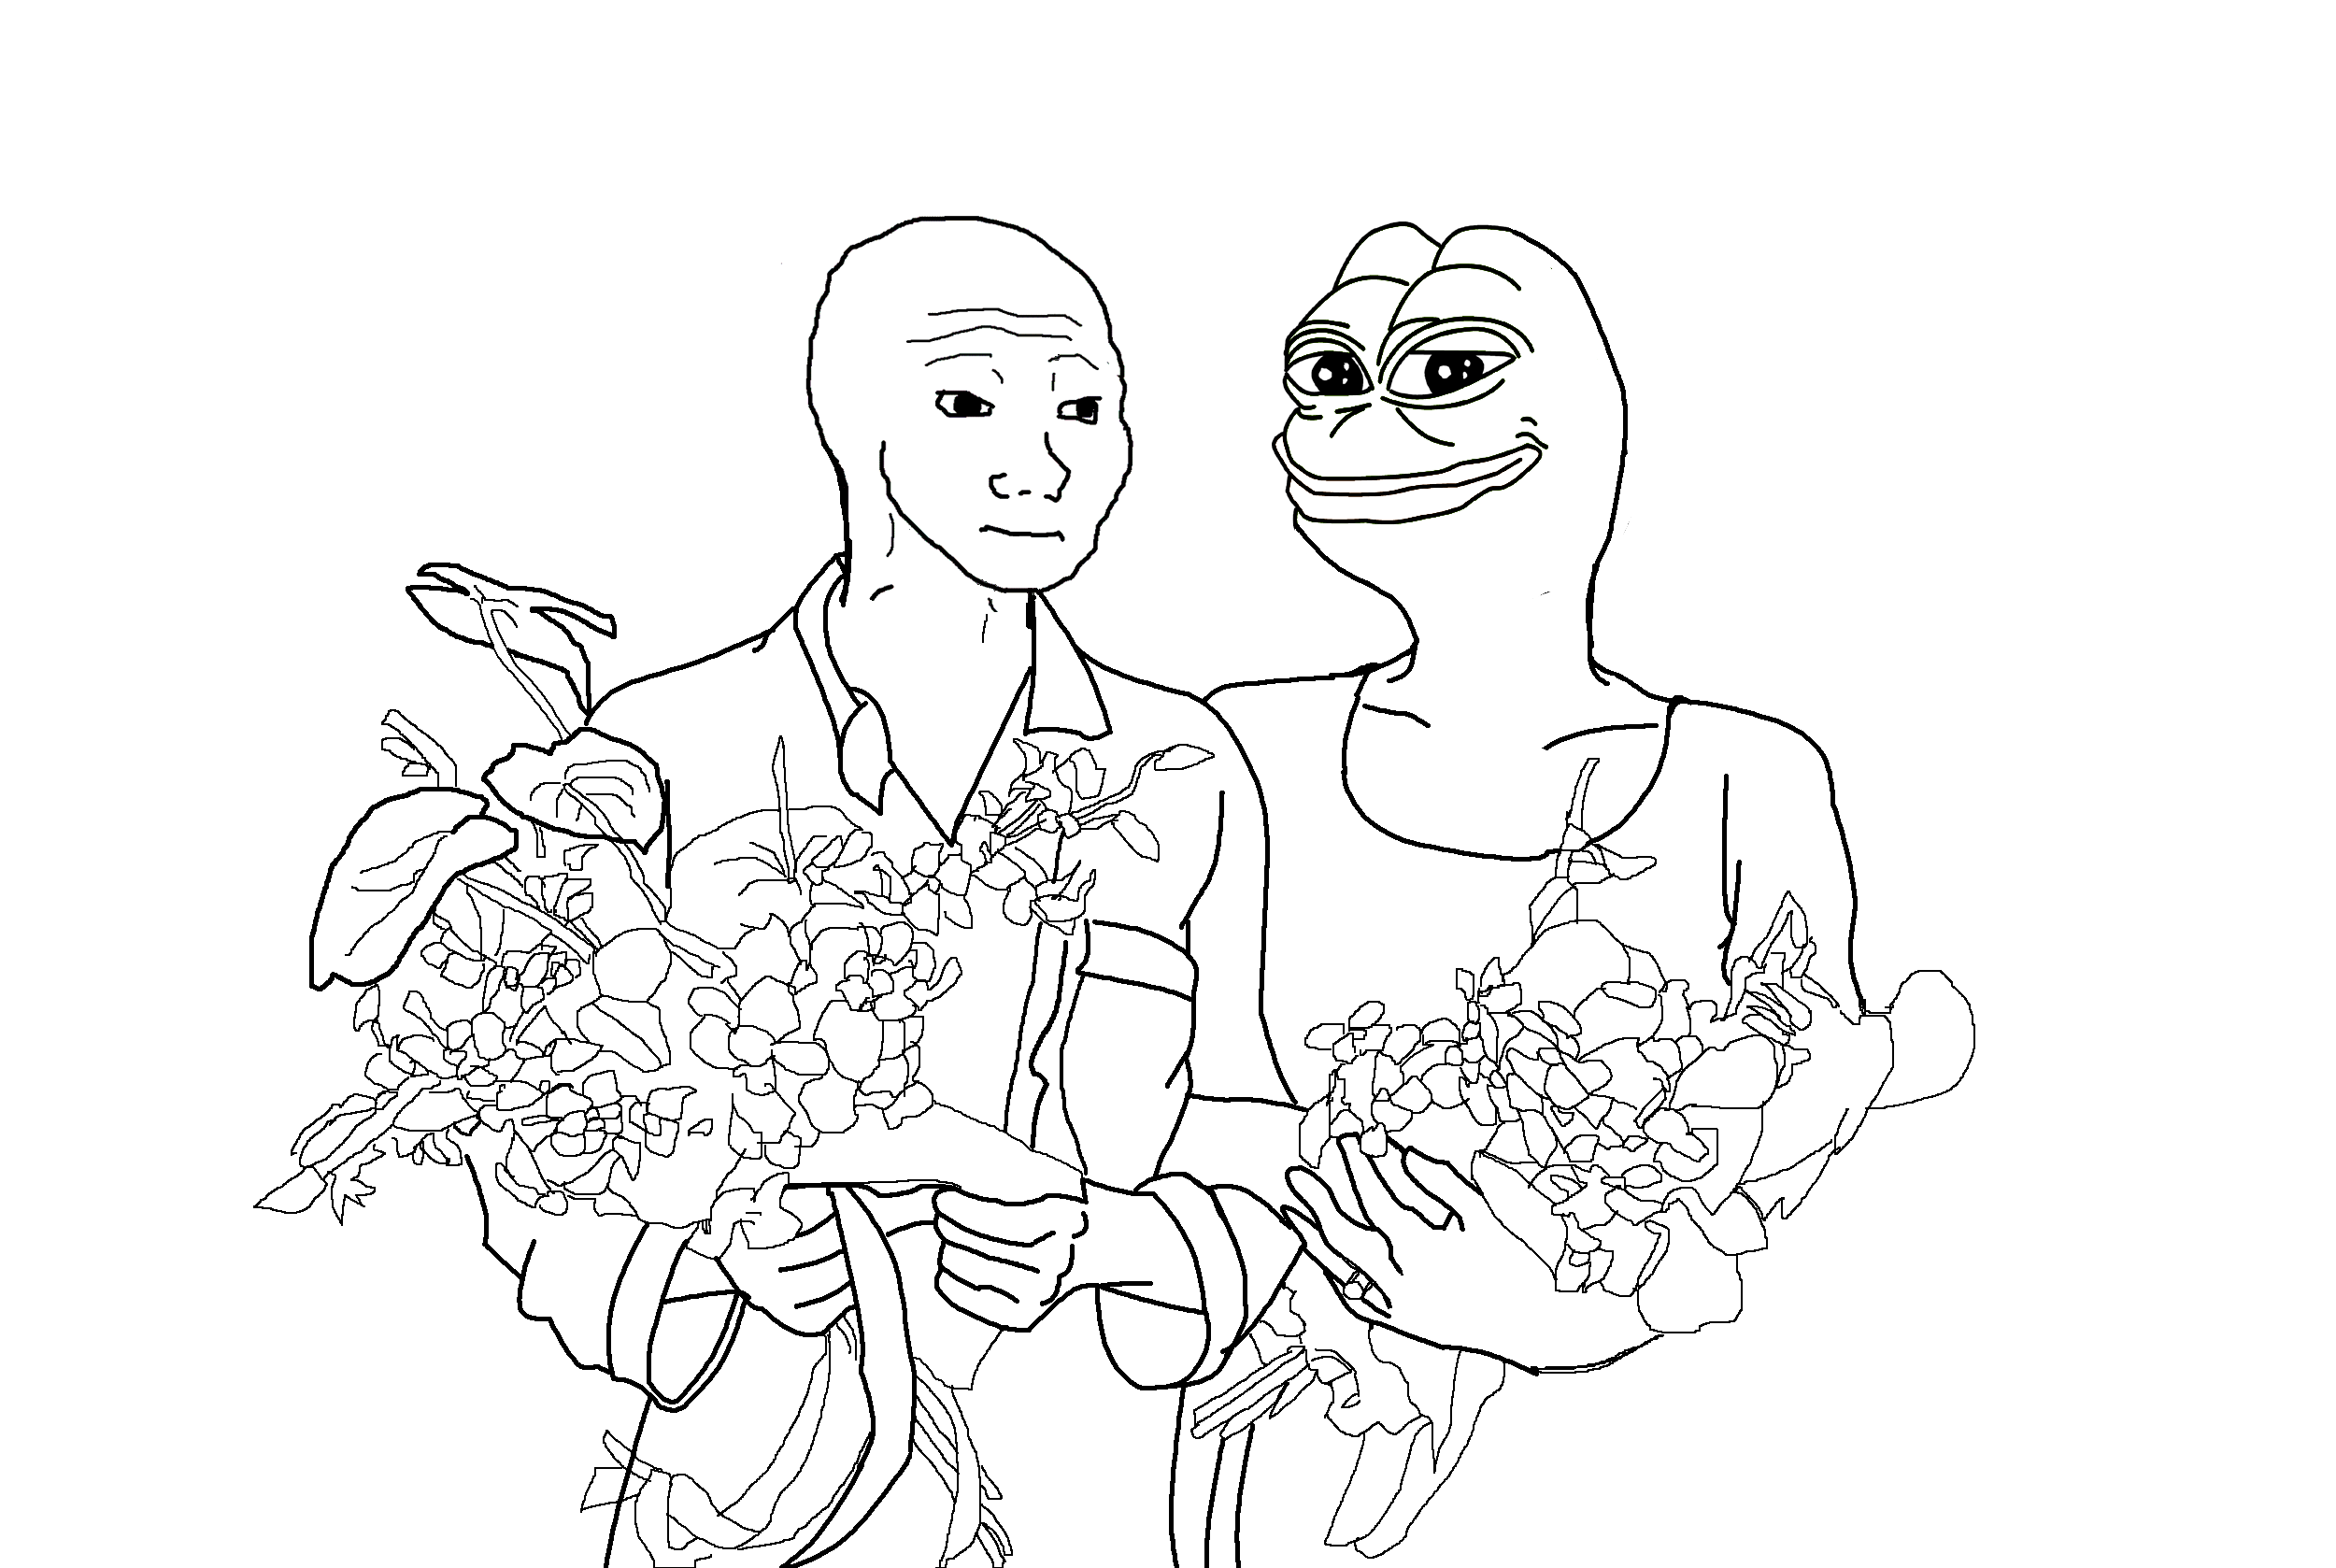 Monkart Coloring Pages Reddit - Free Coloring Page